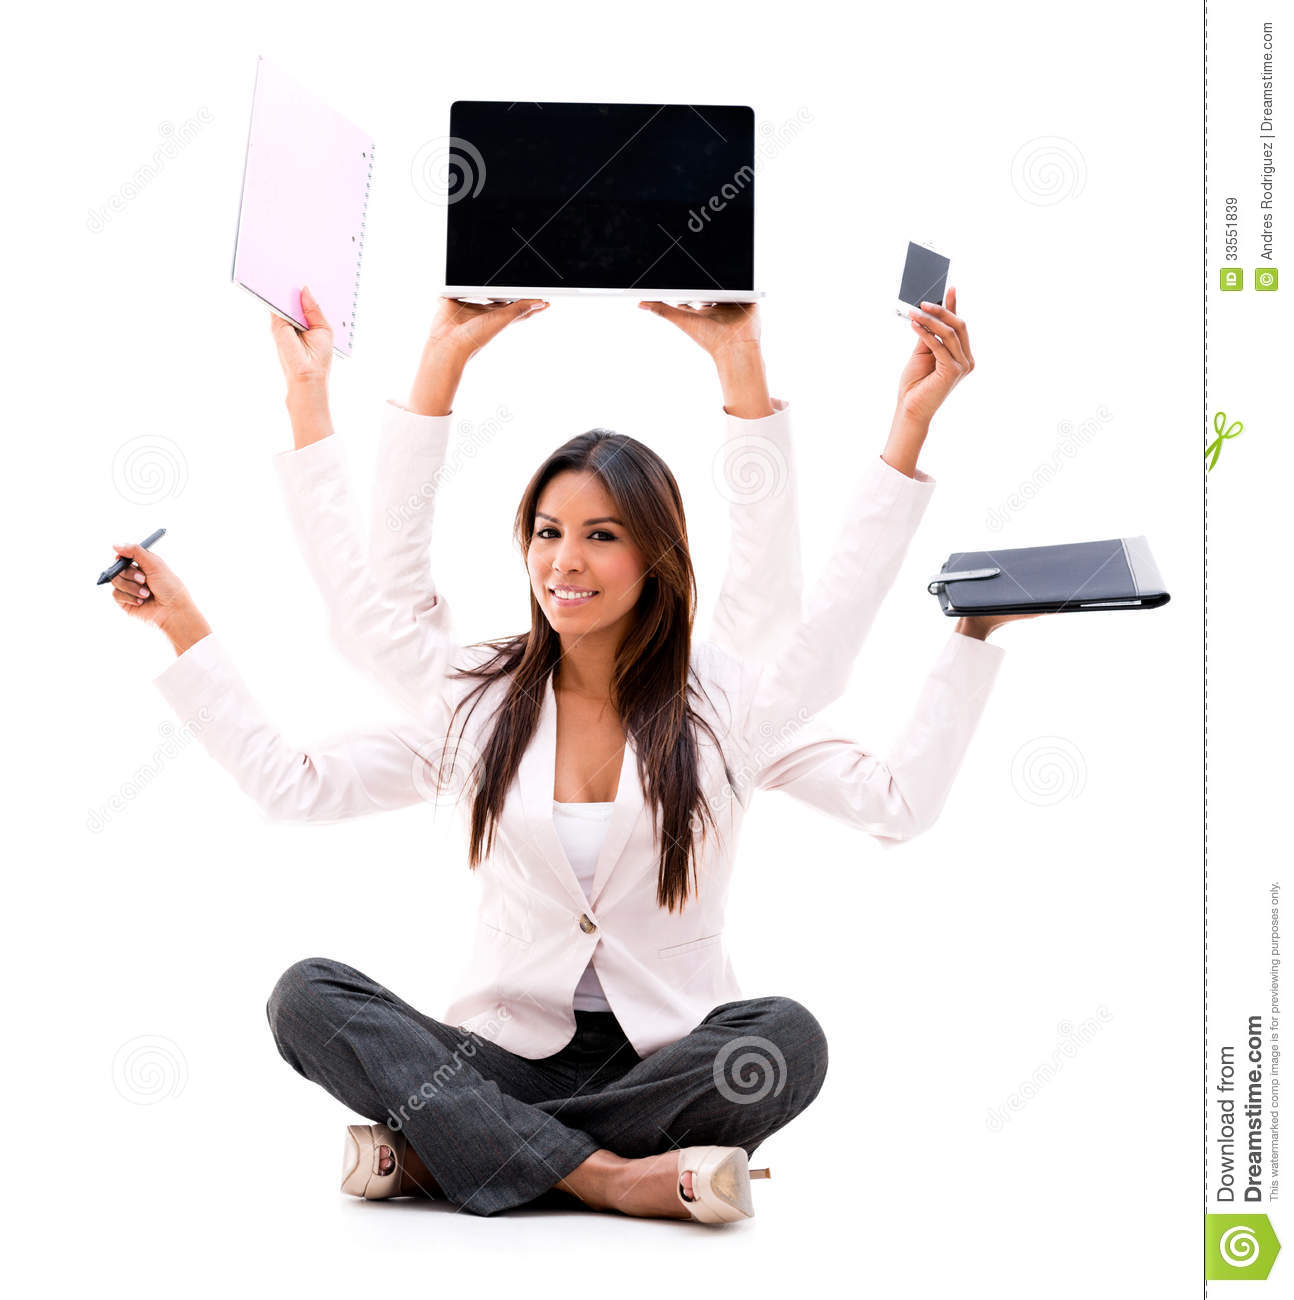 business-woman-multitasking-isolated-over-white-background-33551839.jpg